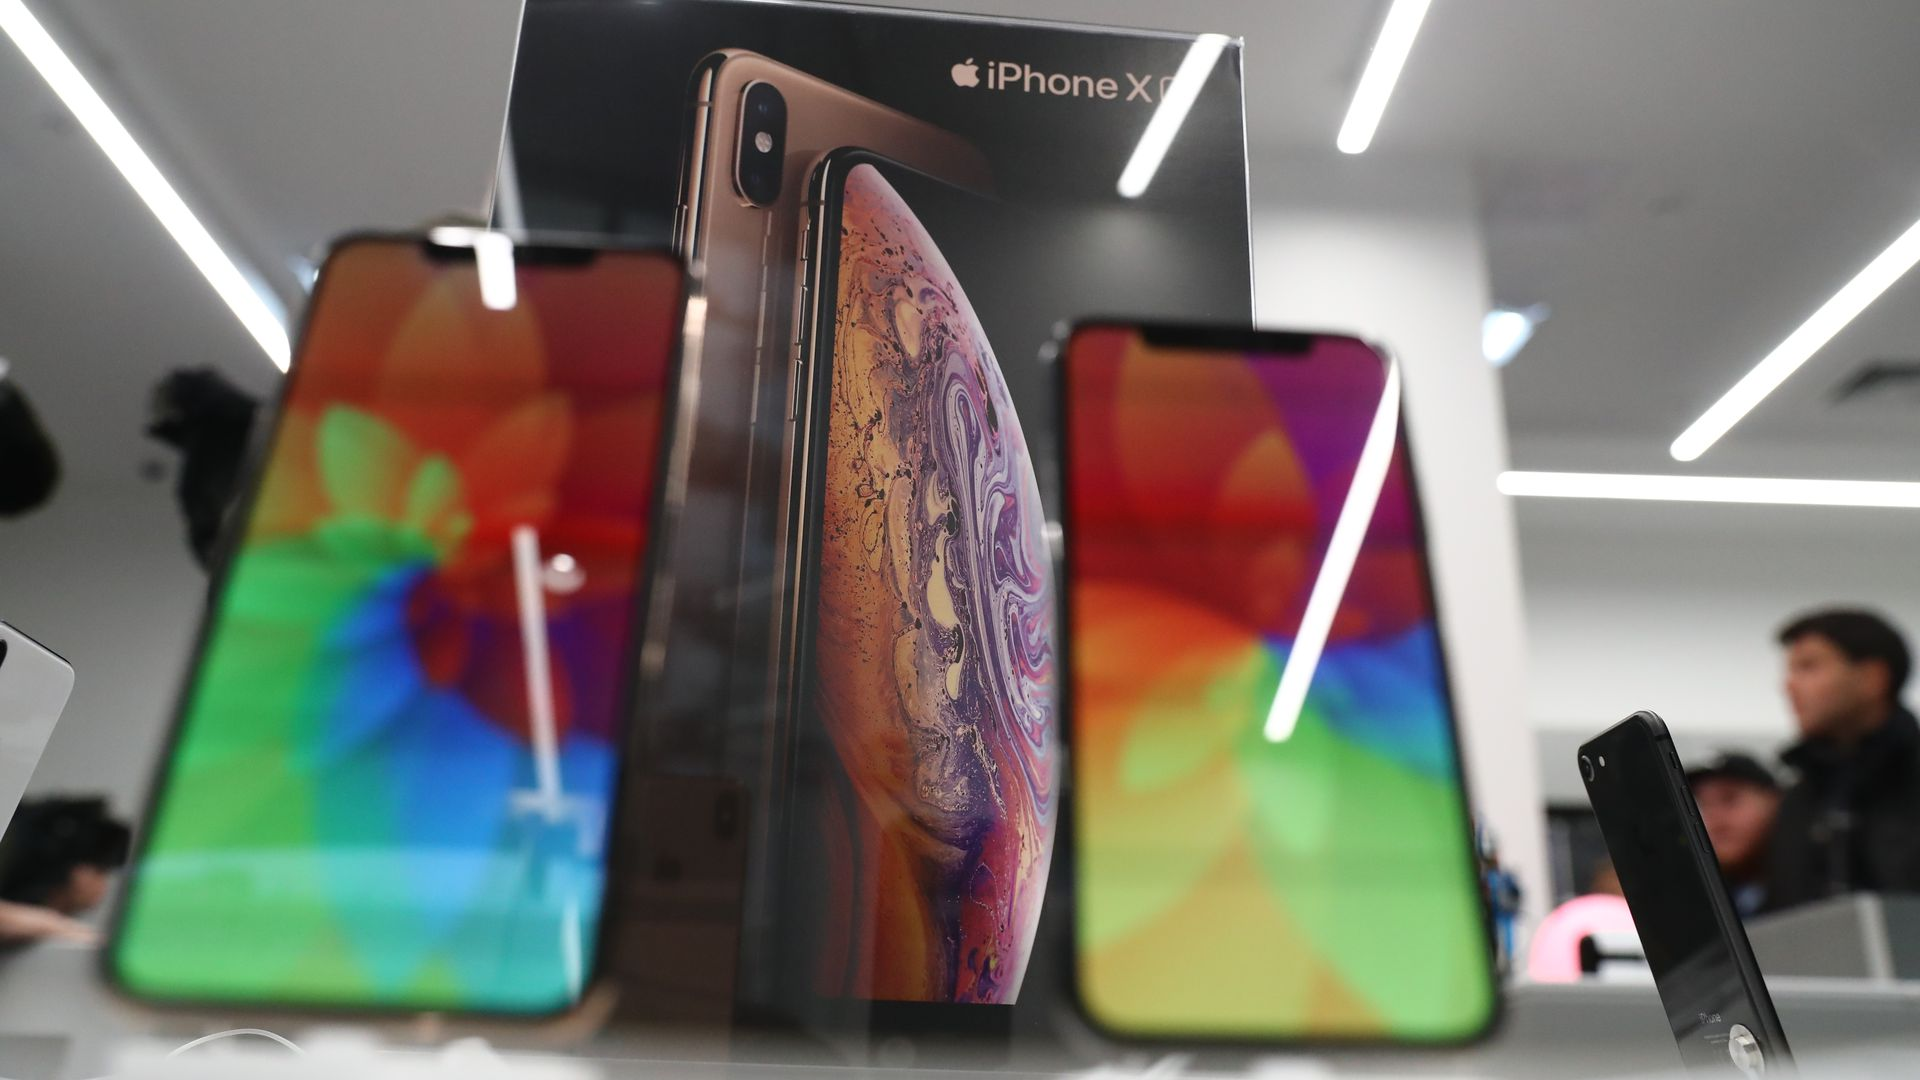 iphone xs on display